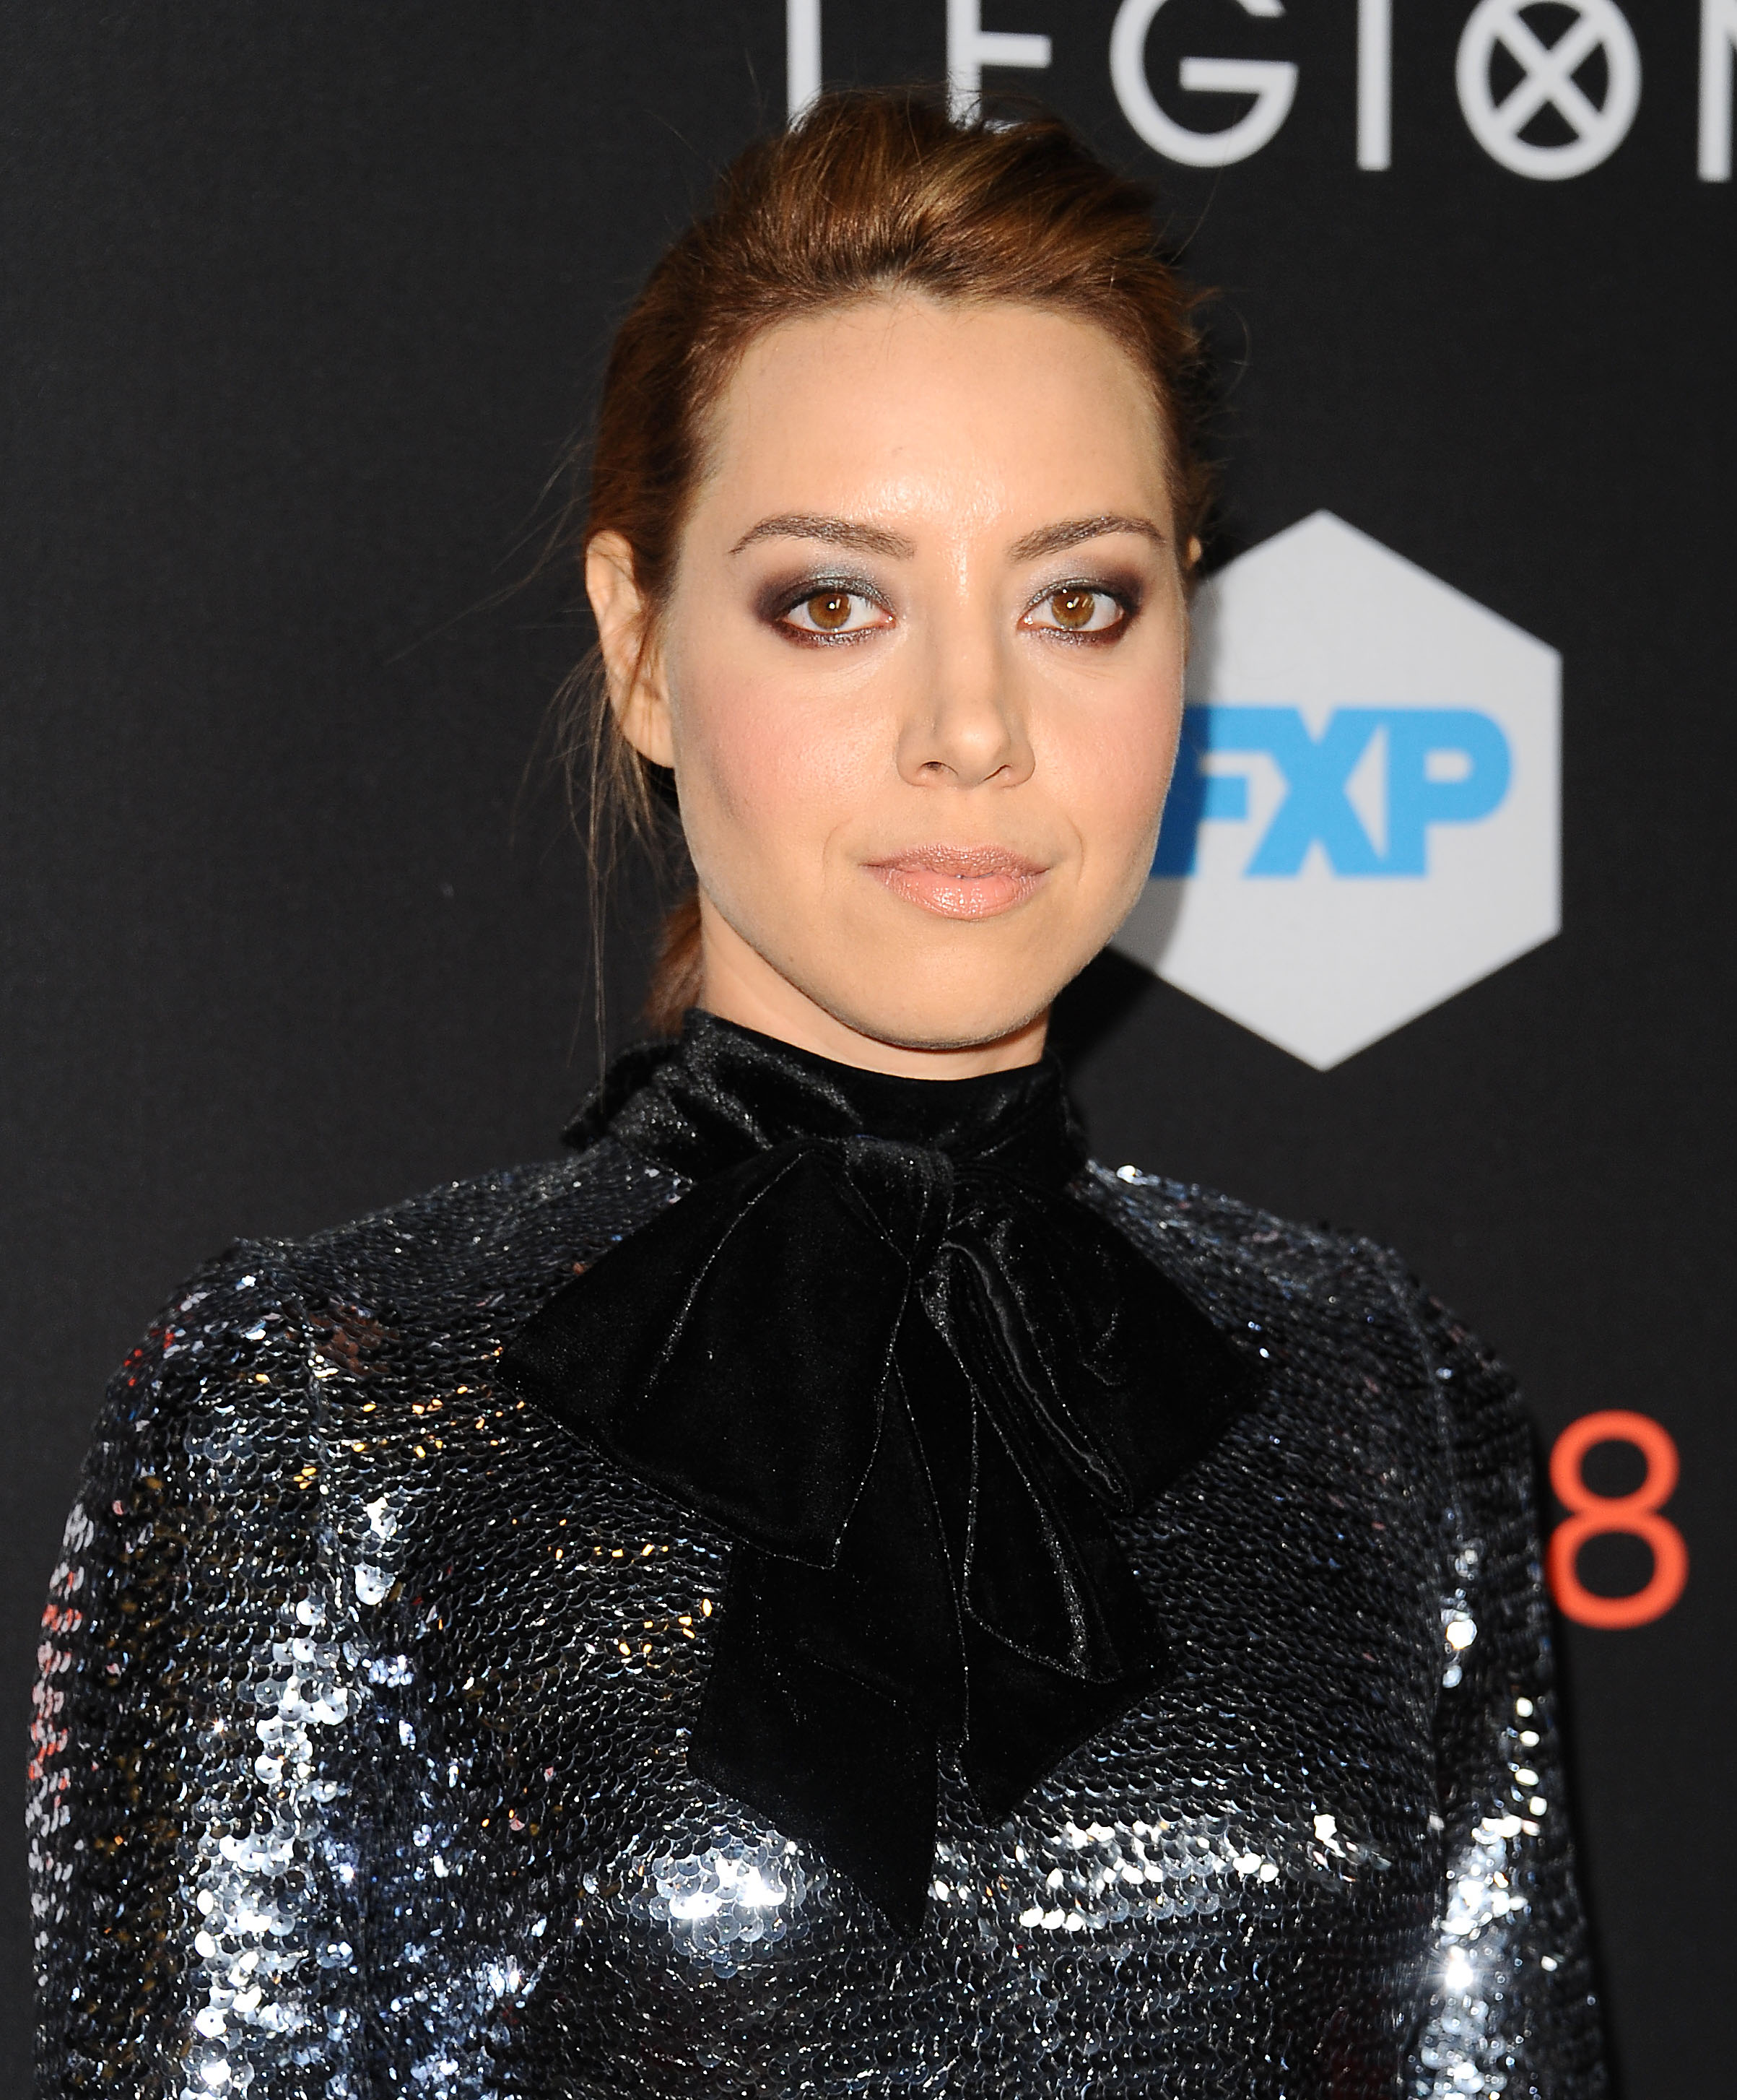 aubrey plaza wore a chrome sequin minidress and we are